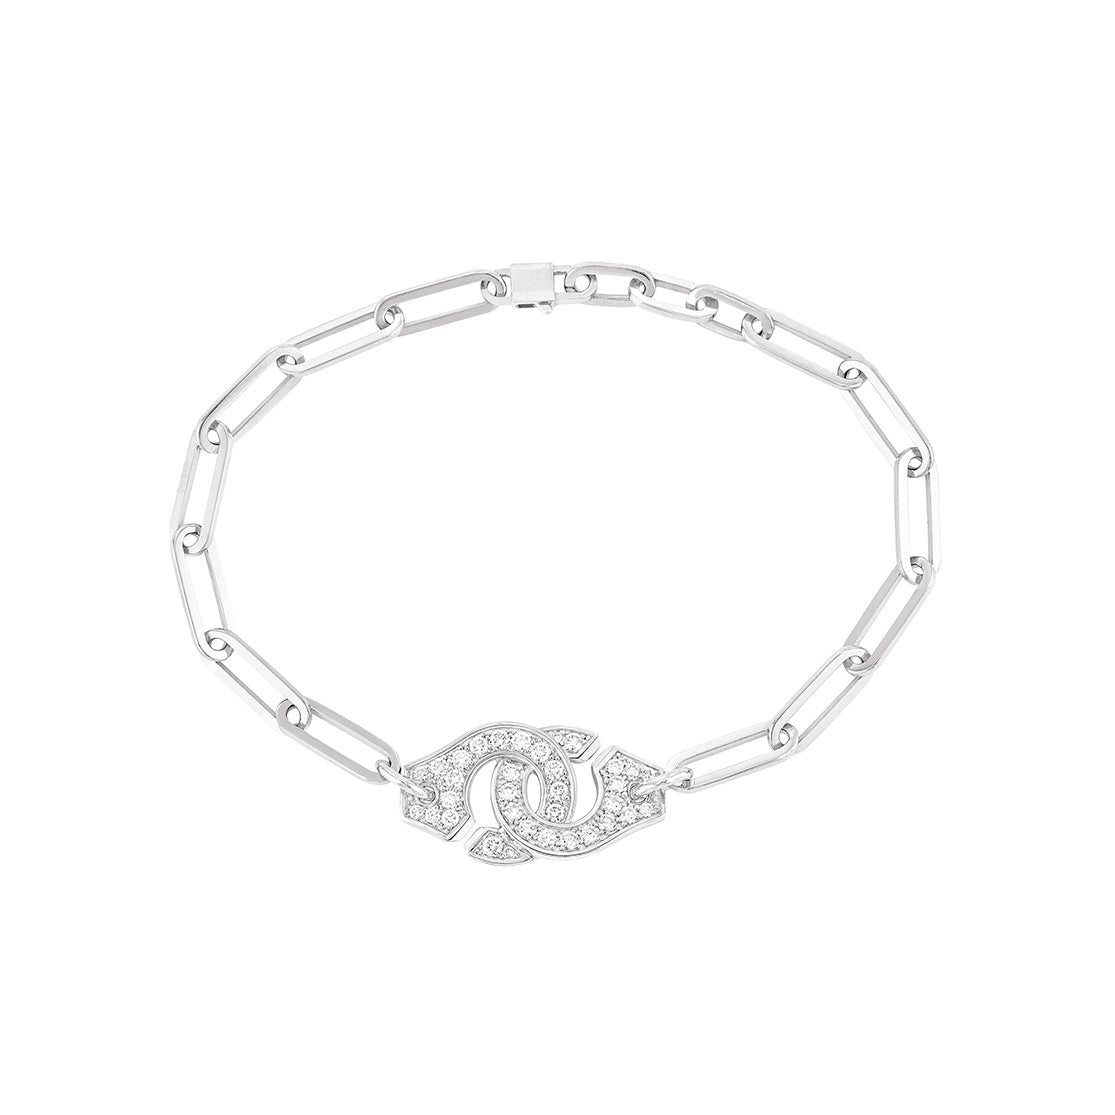 Menottes R12 Double Diamond Cuff Bracelet  - Dinh Van - Bracelets | Broken English Jewelry